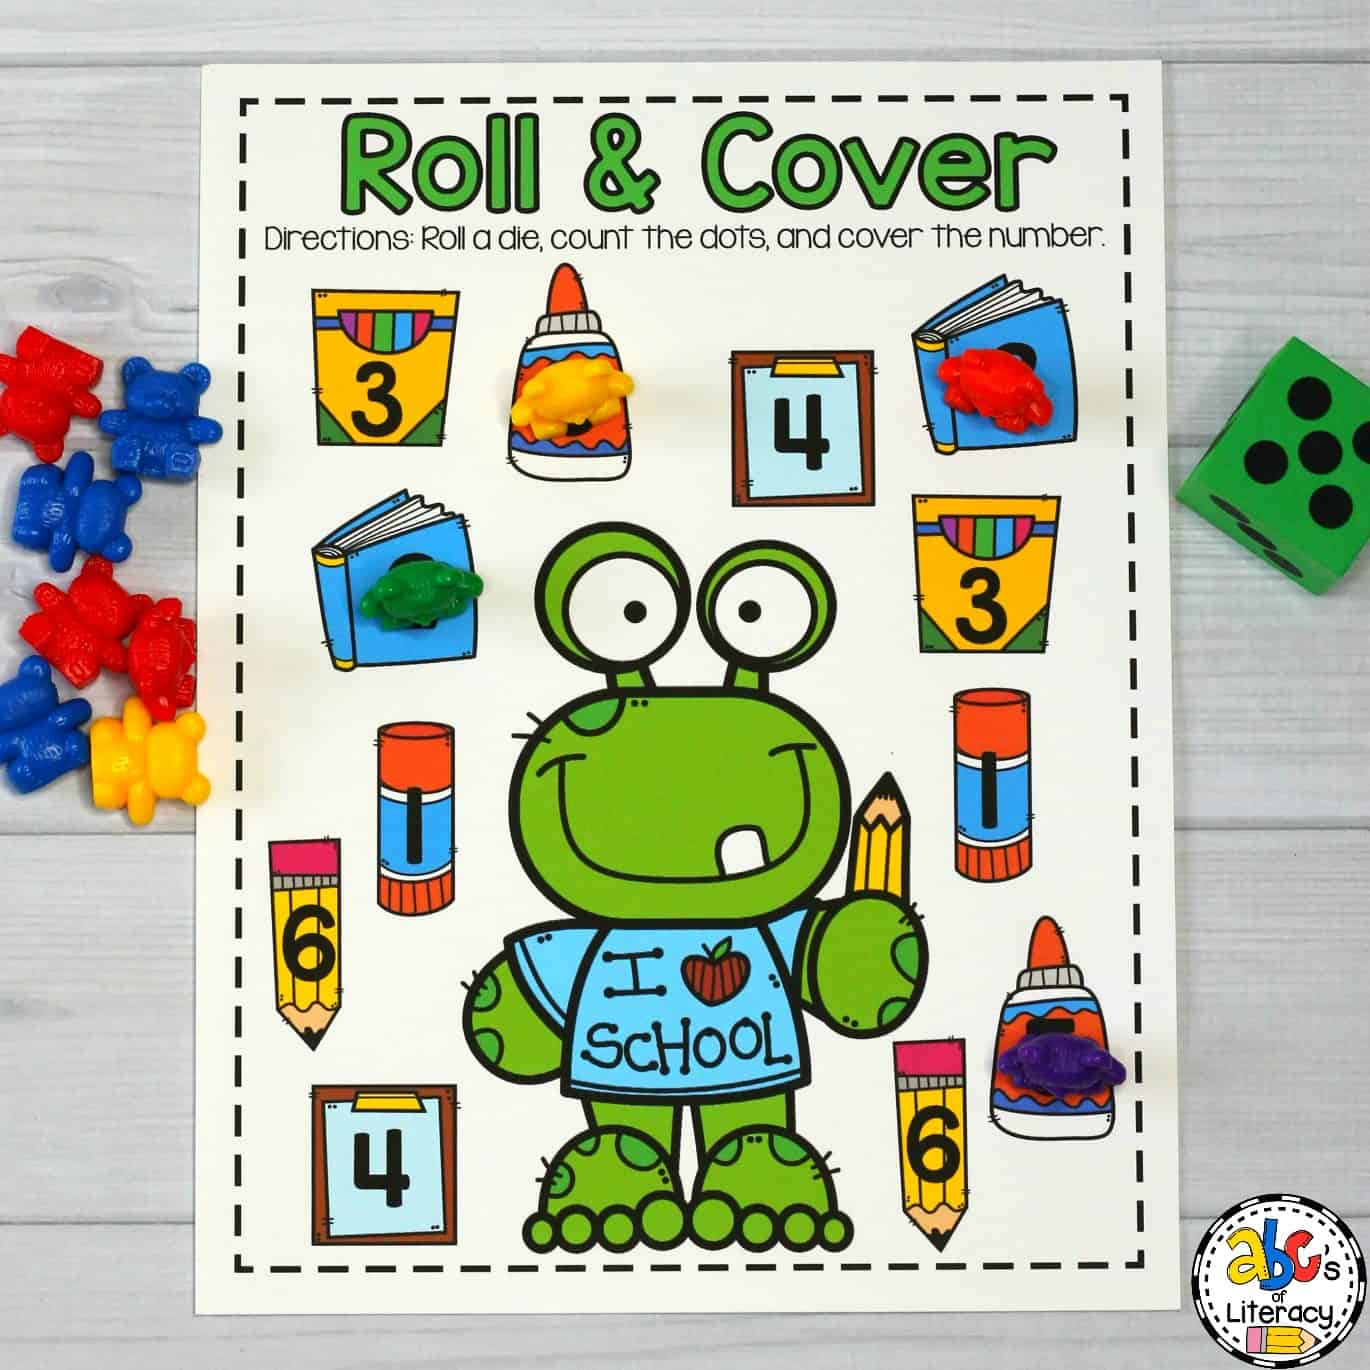 School Supply Roll & Cover Game